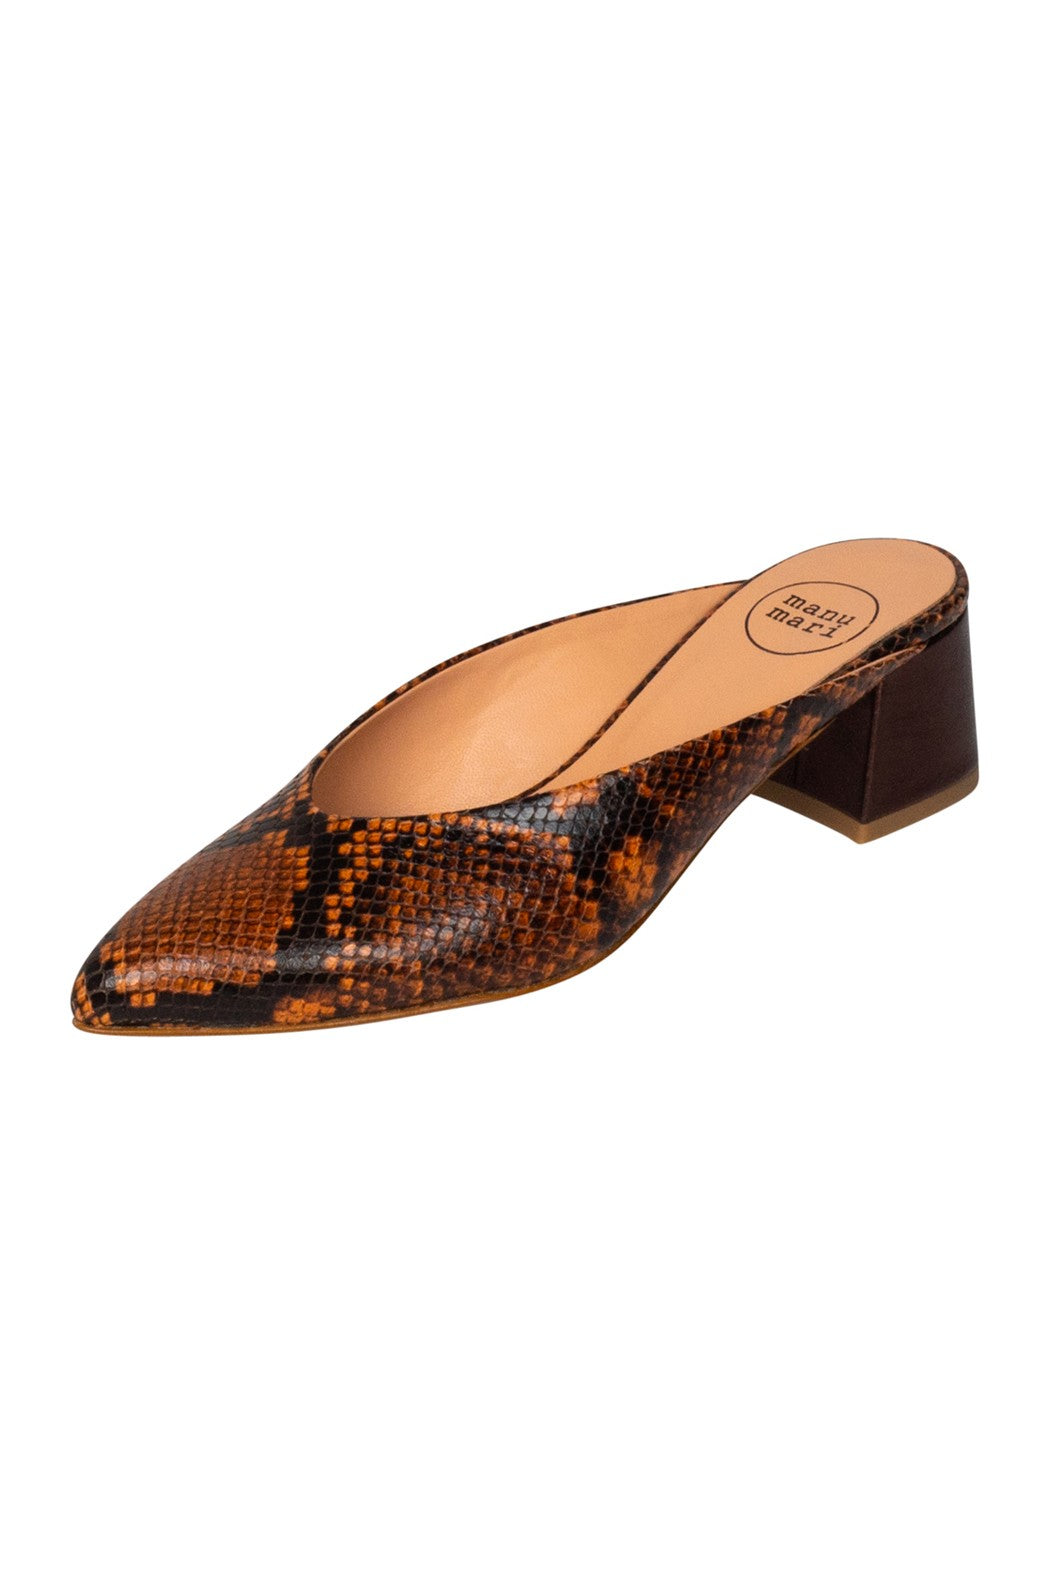 Italian leather brown snakeskin mule with low block heel in metallic brown